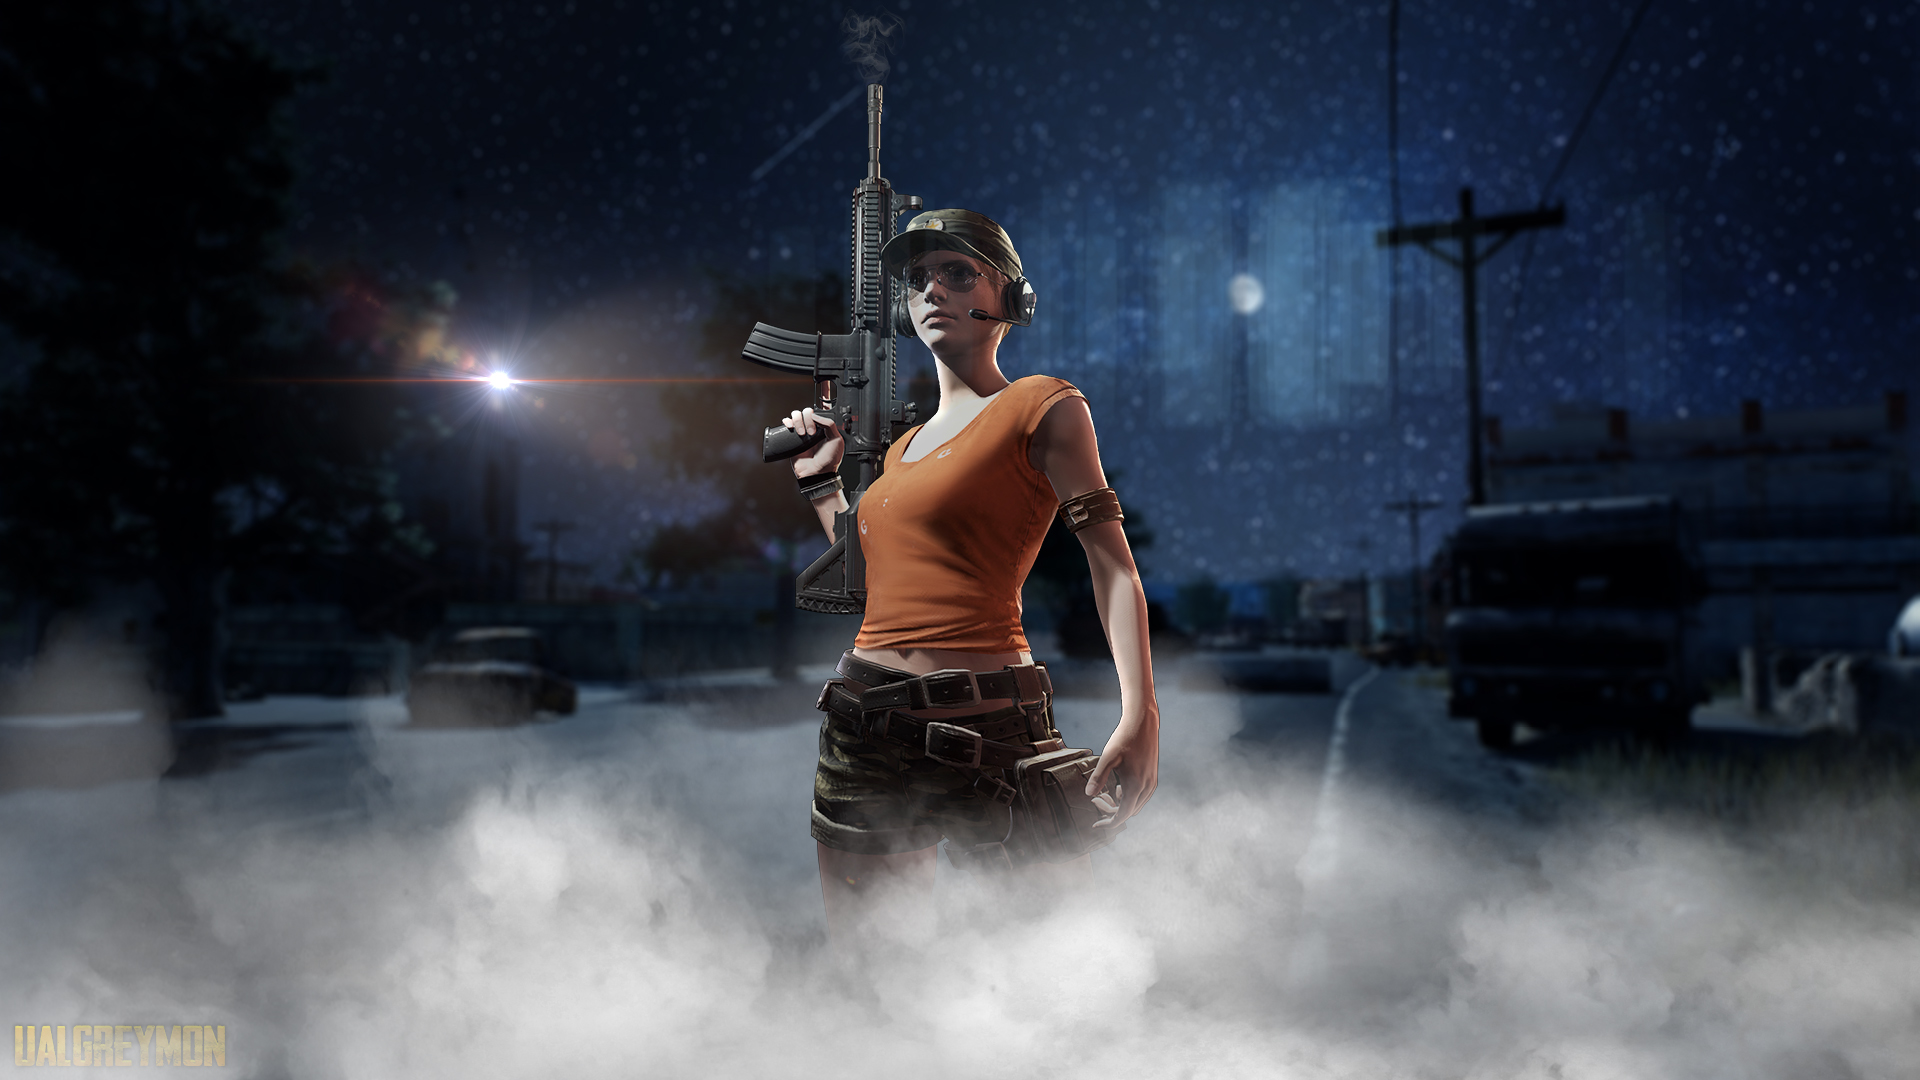 Pubg Game Hd Wallpaper Download: Pubg Night, HD Games, 4k Wallpapers, Images, Backgrounds